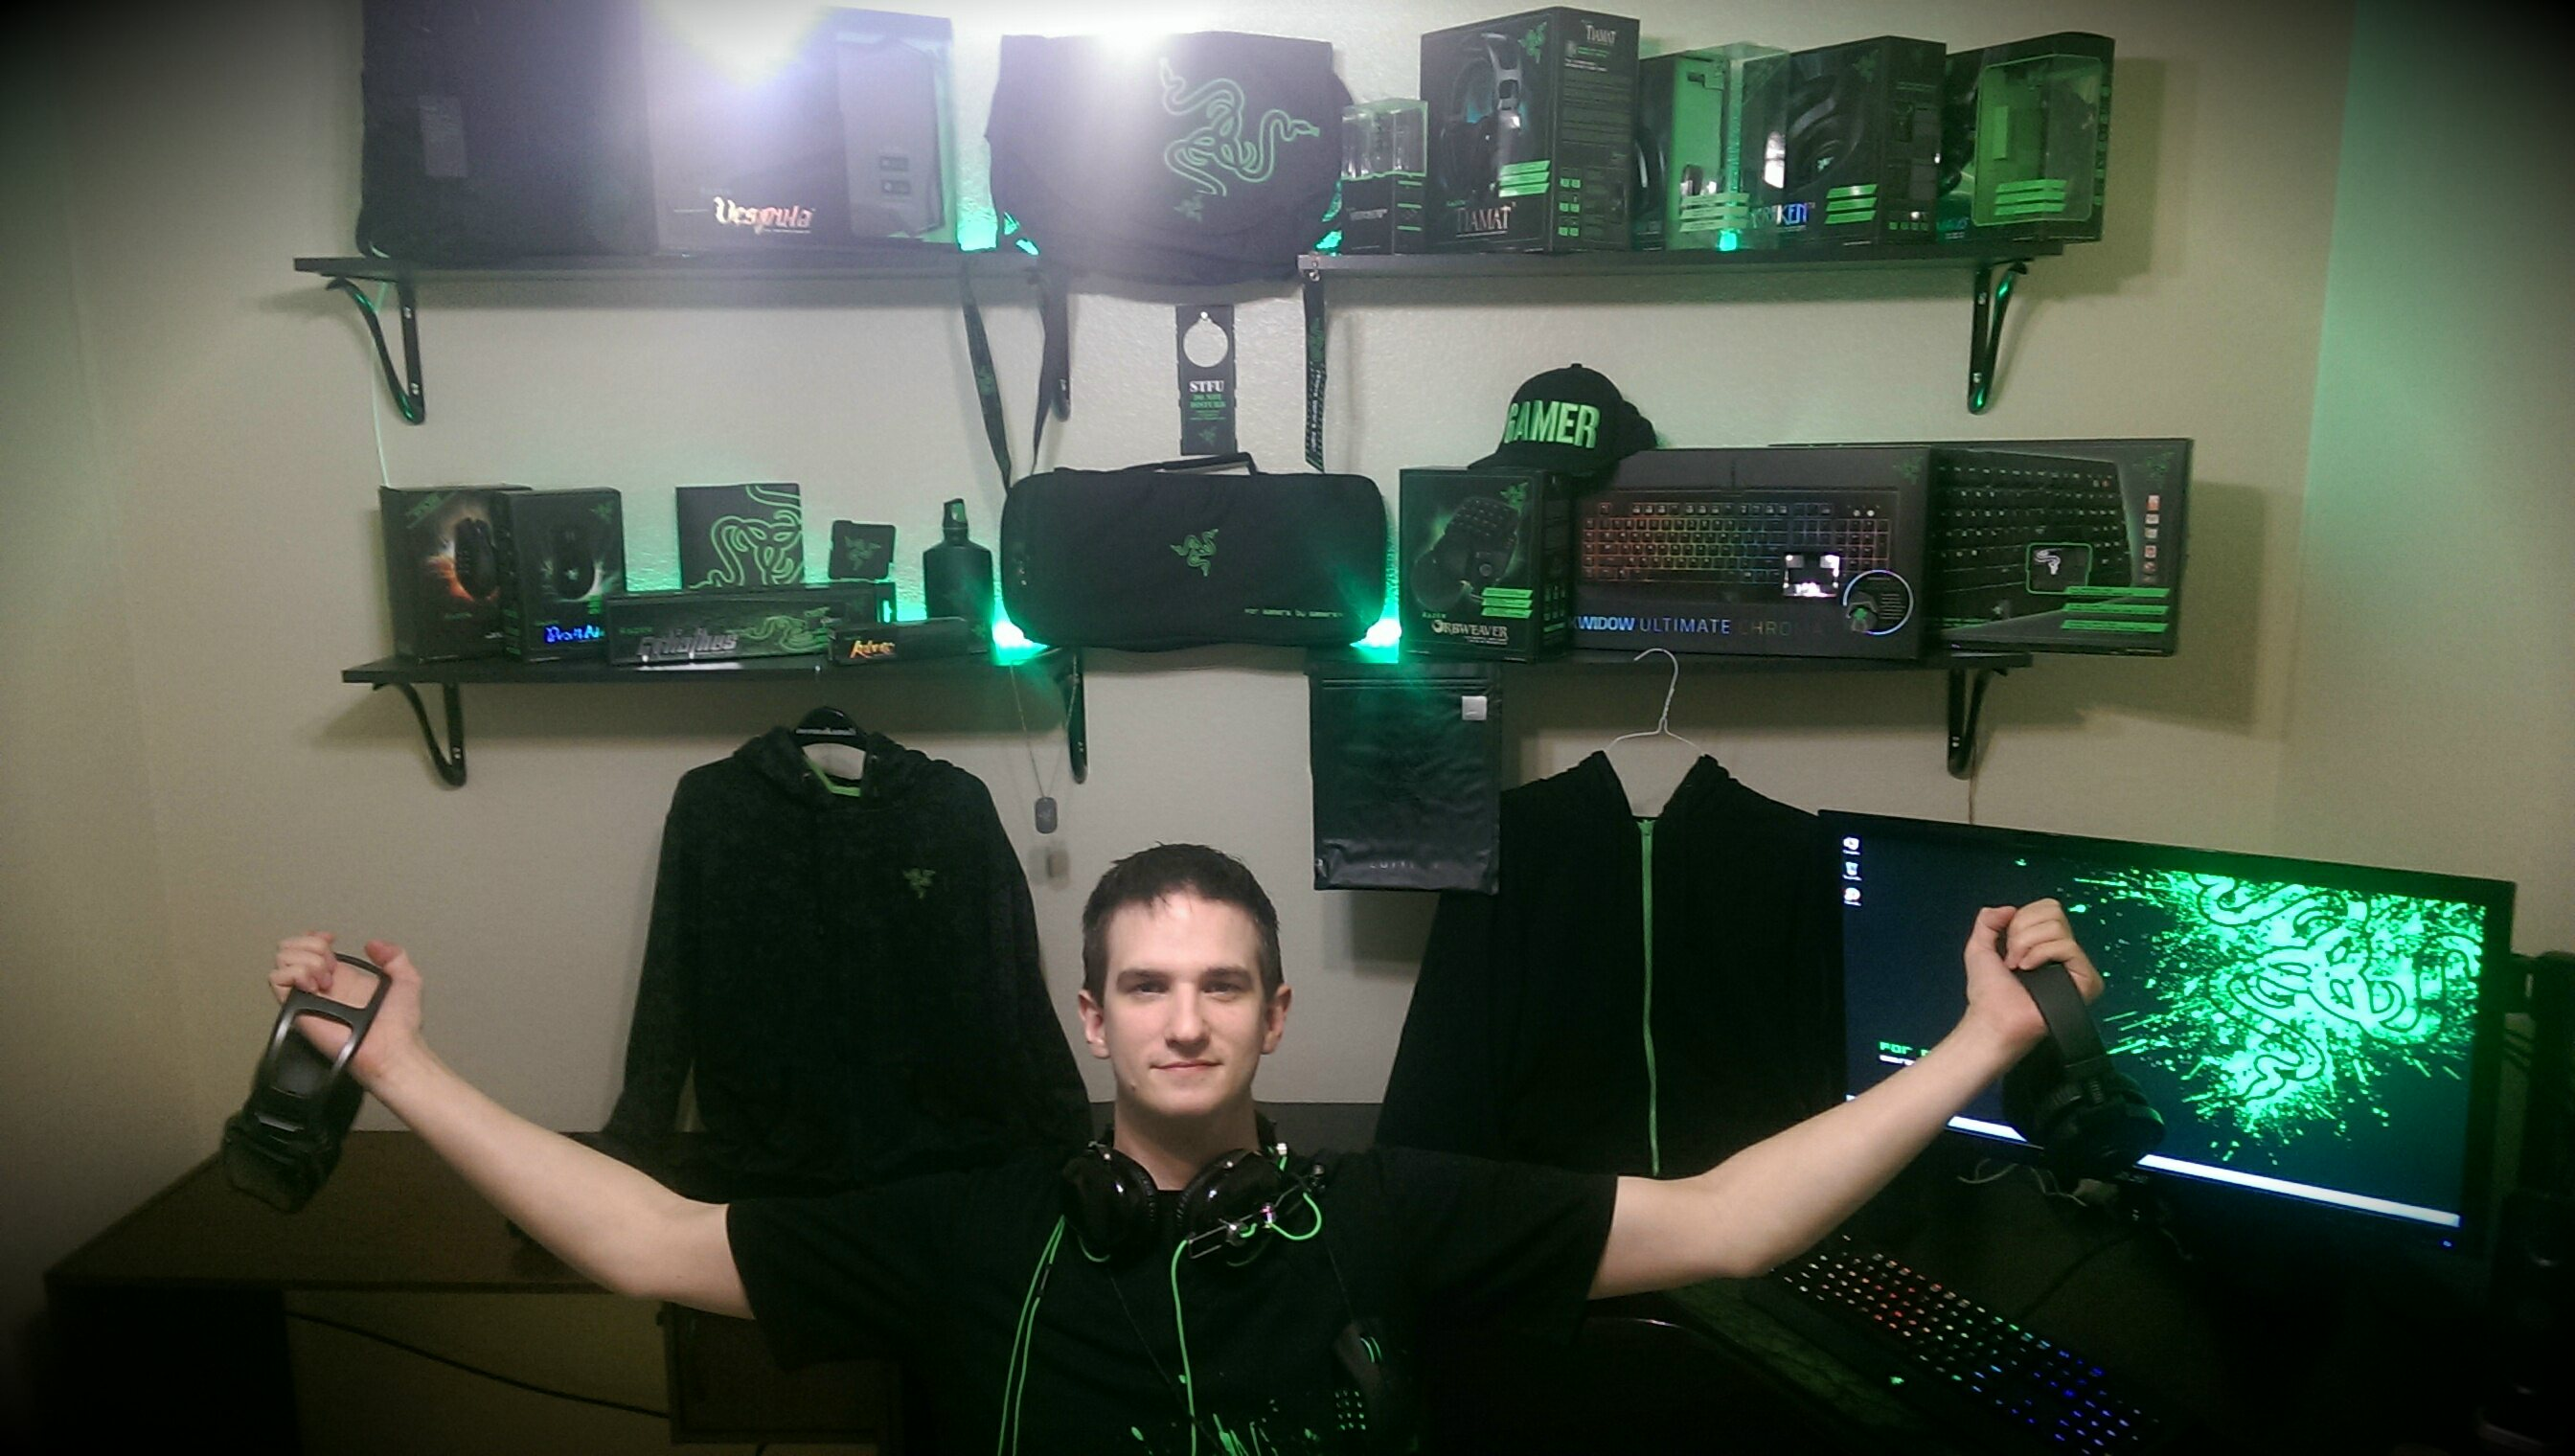 Razer is a big name in gaming peripherals because they make quality products